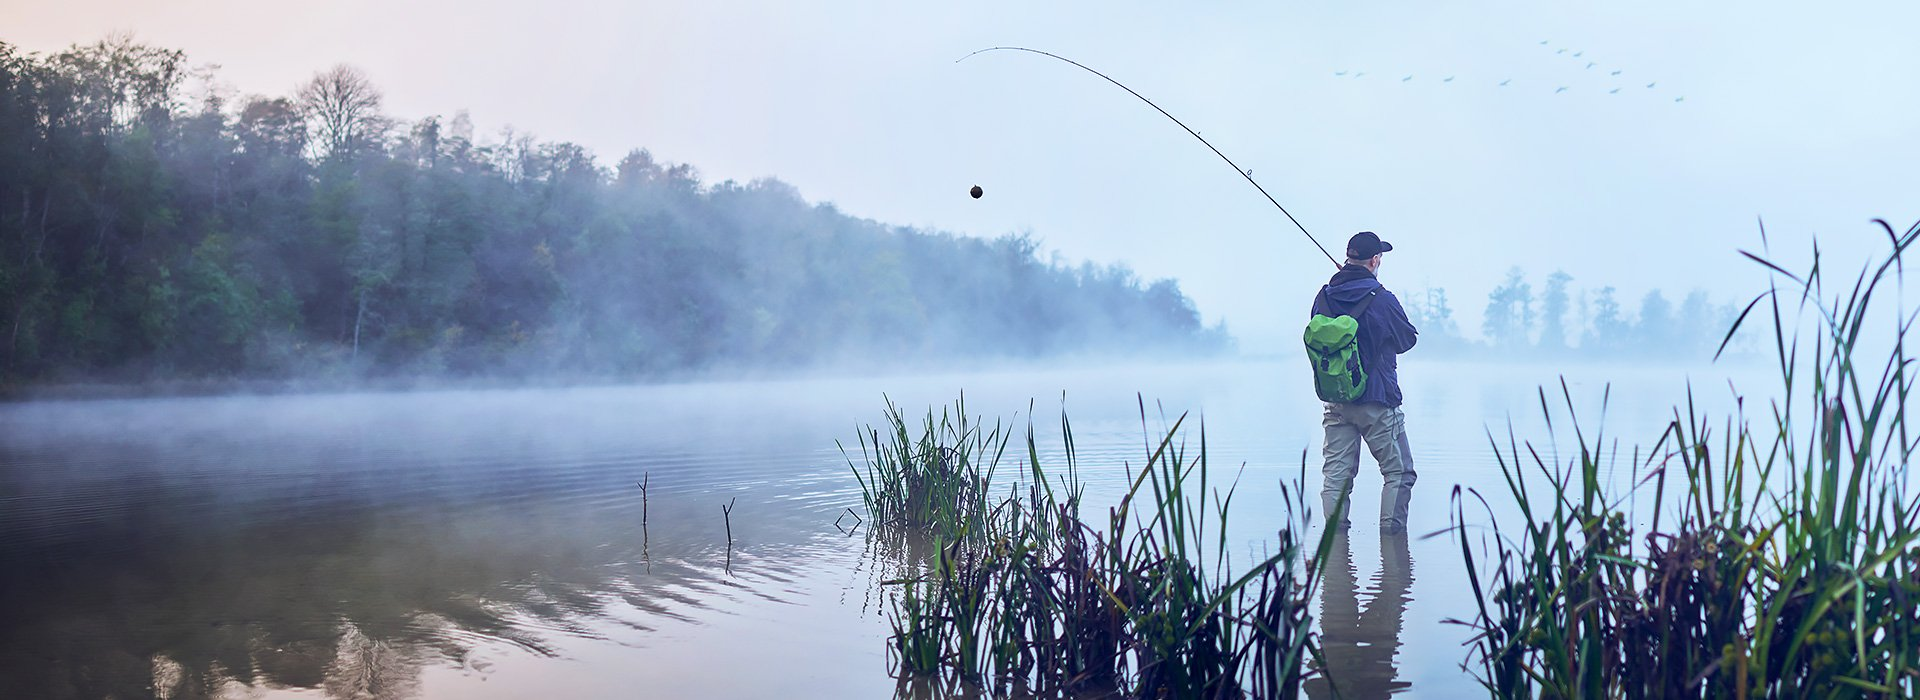 Prepare yourself for the upcoming fishing seasonStart fishing smarter from only $189.99!